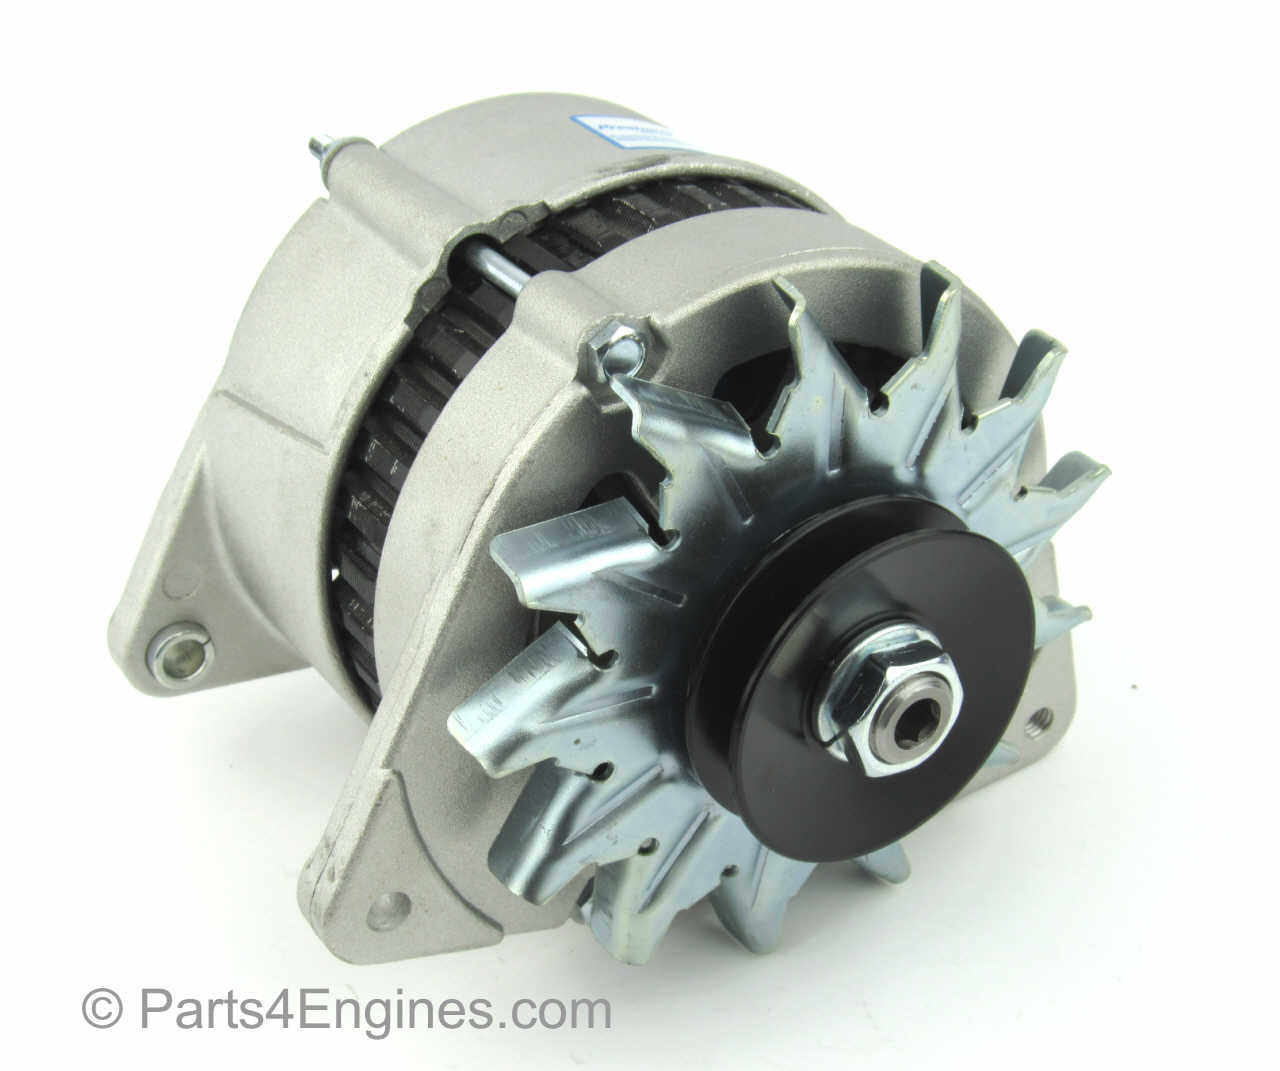 small resolution of  left perkins 4 107 alternator 12v 70 amp from parts4engines com